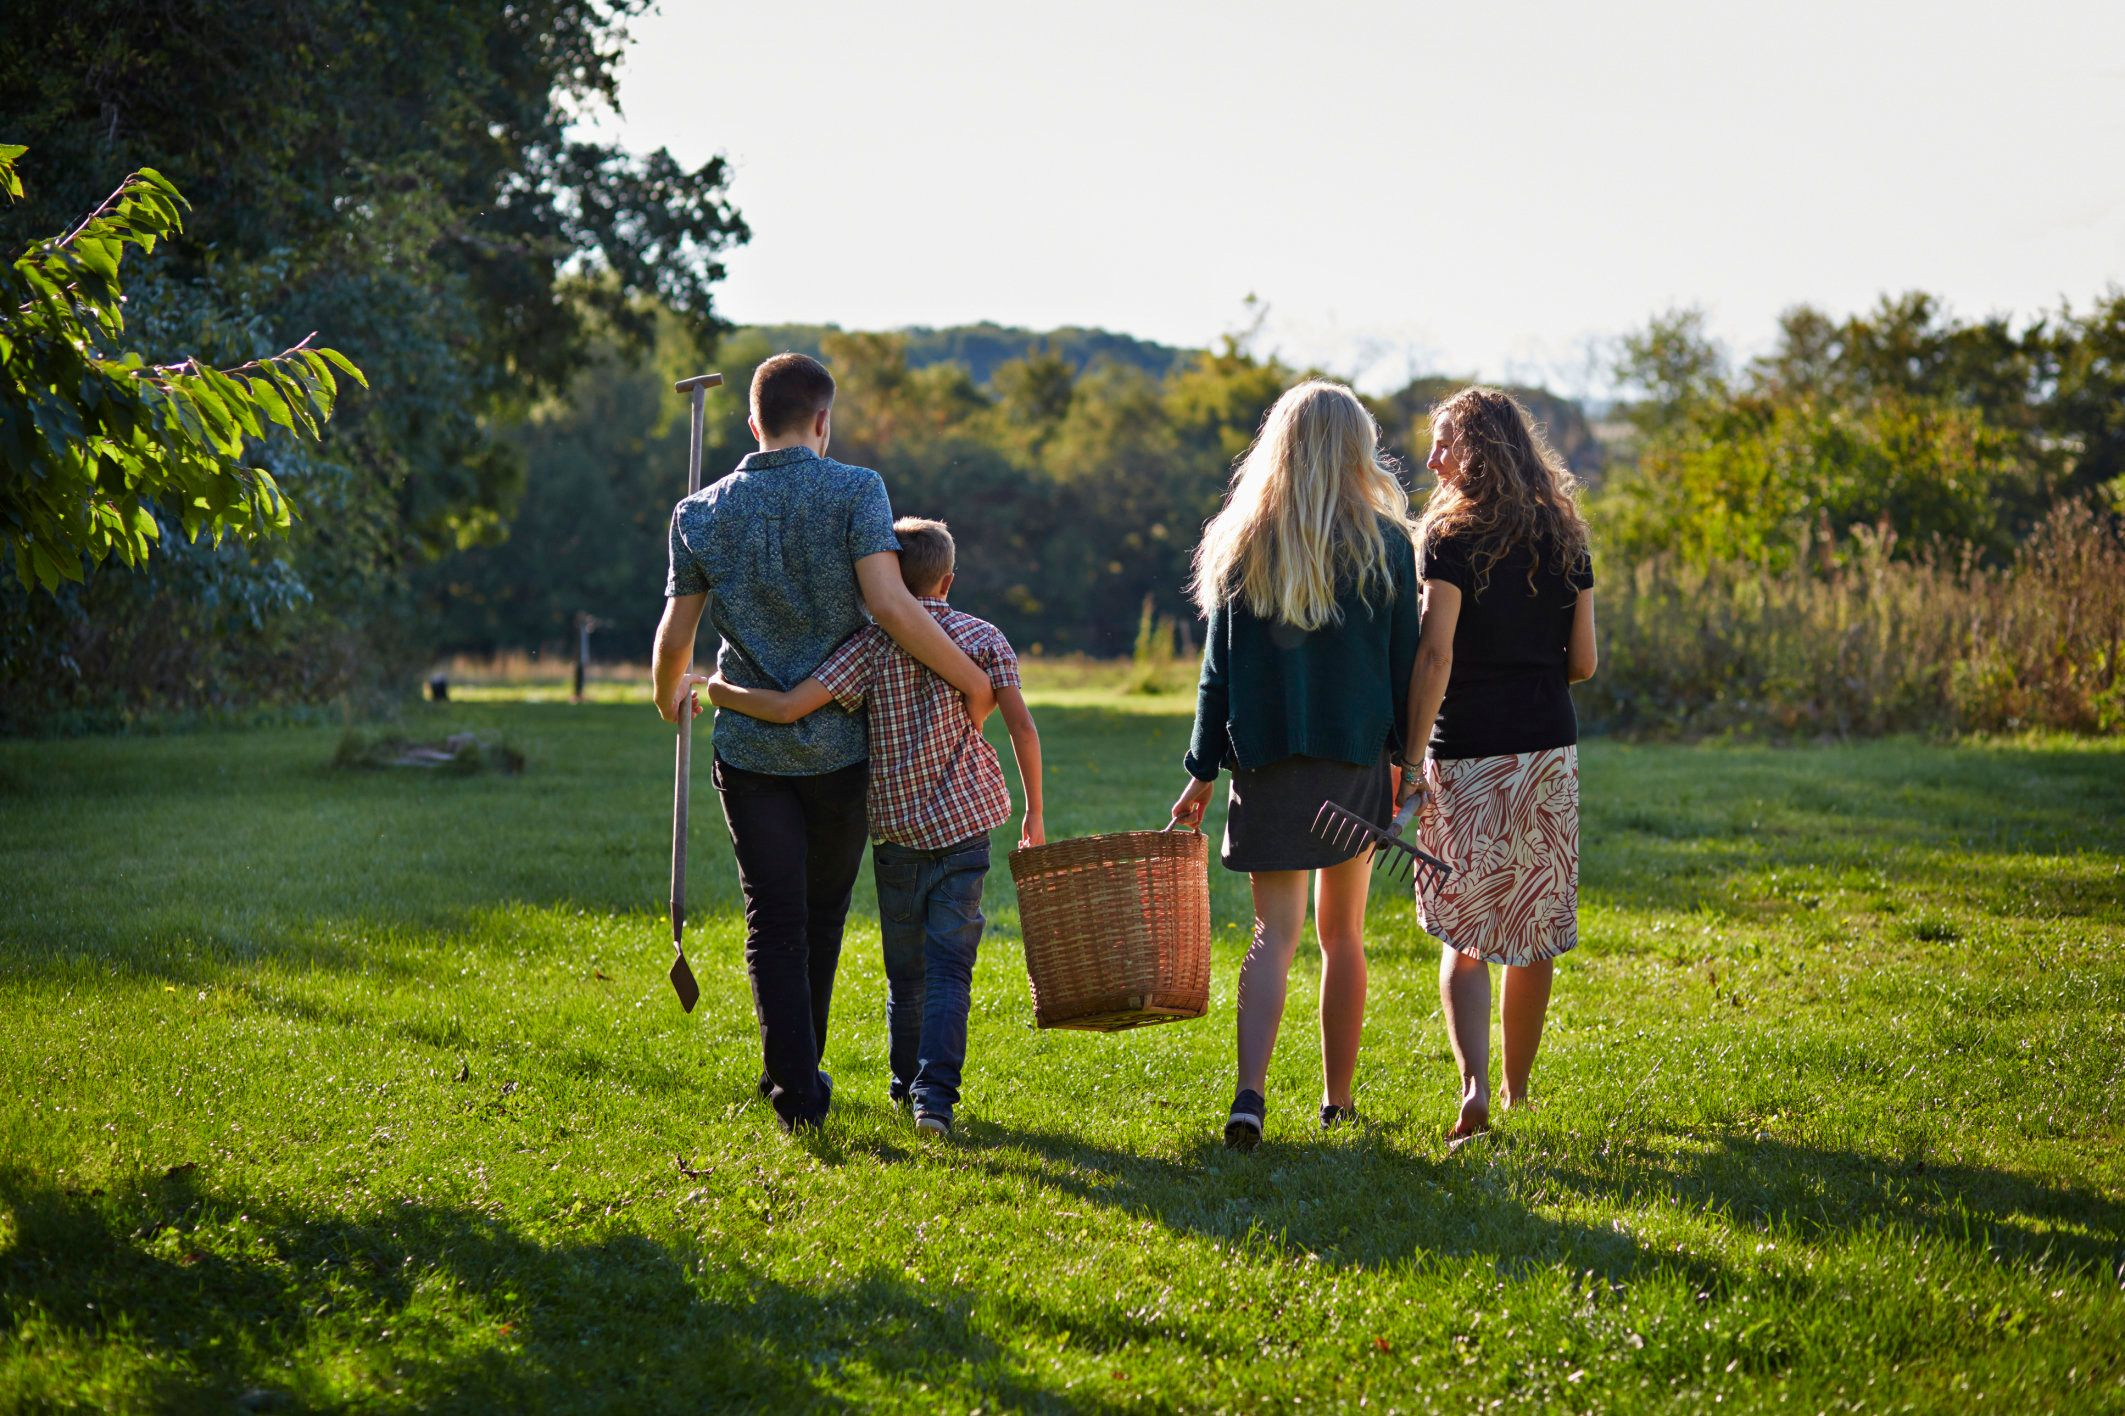 Family walking down green lawn, carrying basket. Back to camera